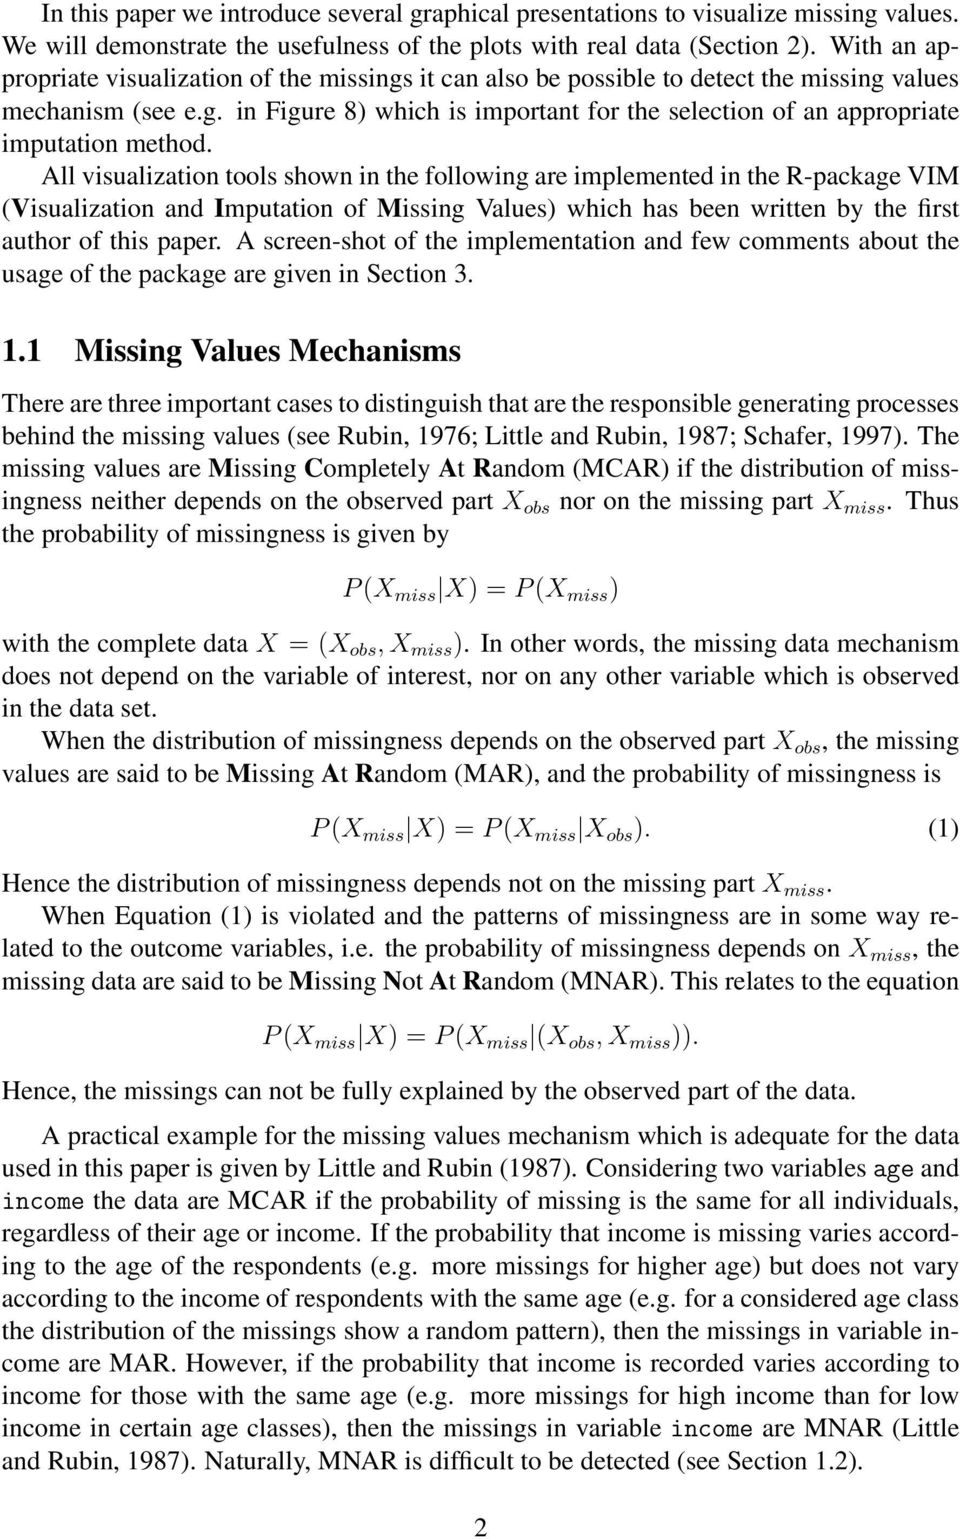 All visualization tools shown in the following are implemented in the R-package VIM (Visualization and Imputation of Missing Values) which has been written by the first author of this paper.